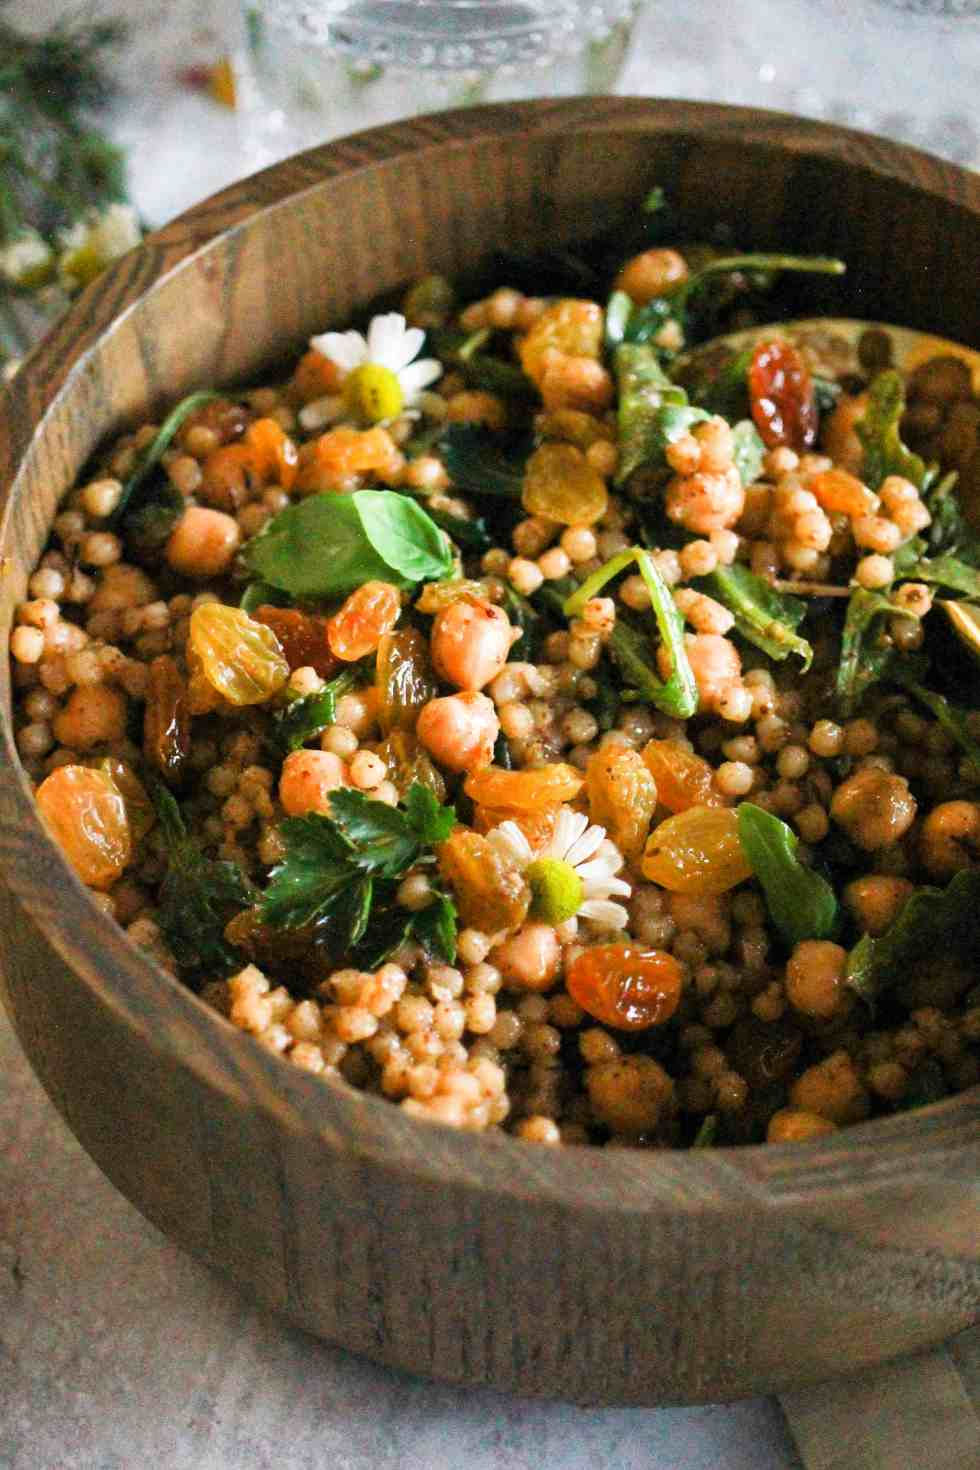 Israeli couscous with chickpeas and golden raisins in a wooden bowl.